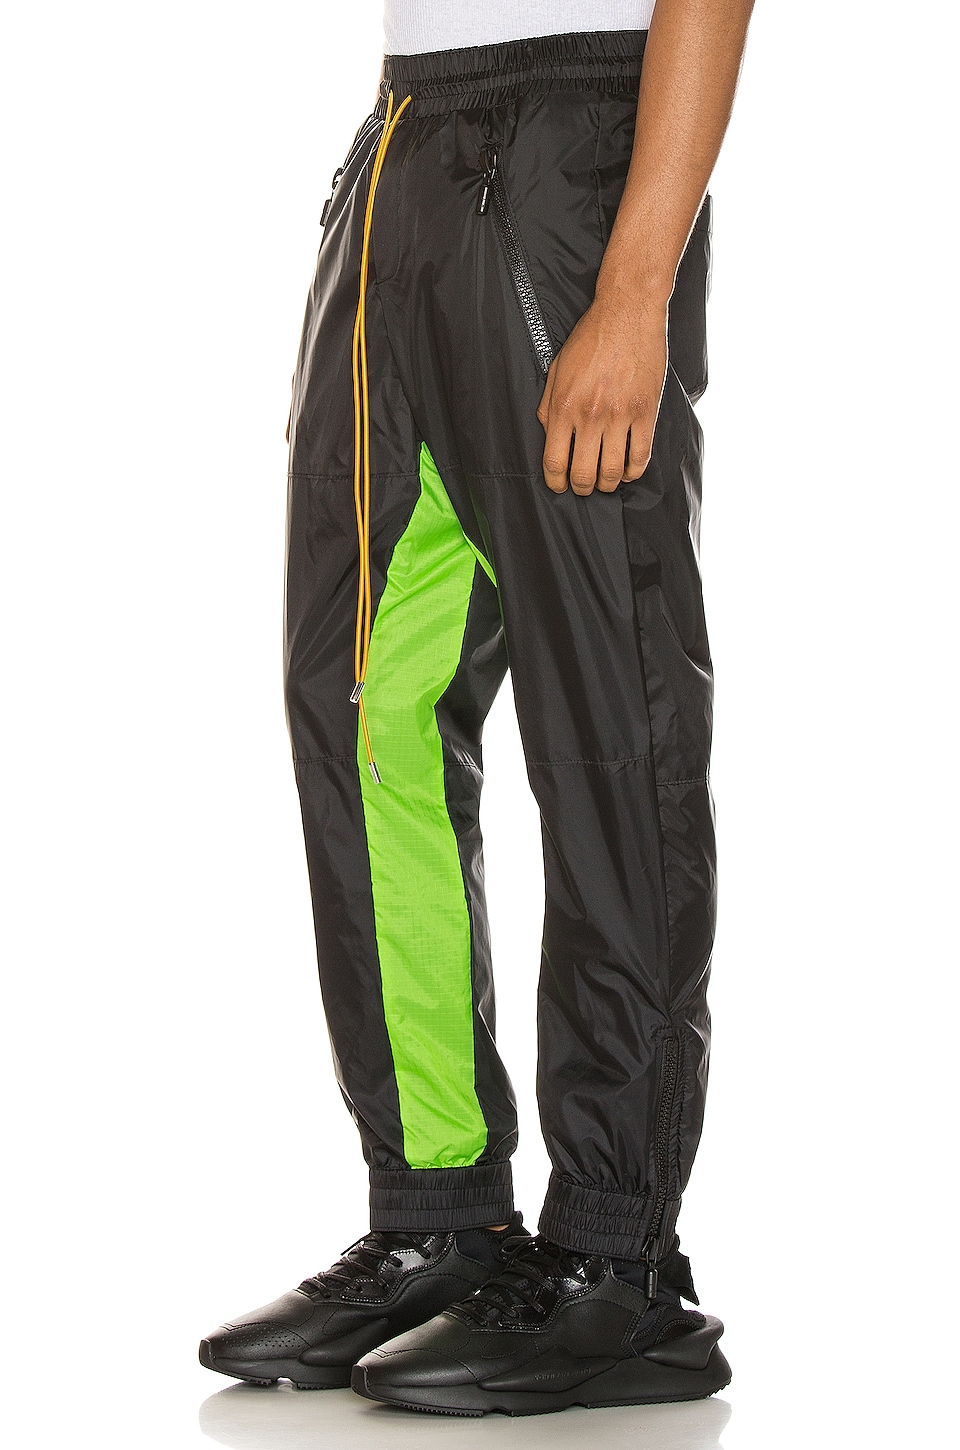 Rhude Flight Suit Pant in Black & Neon Green